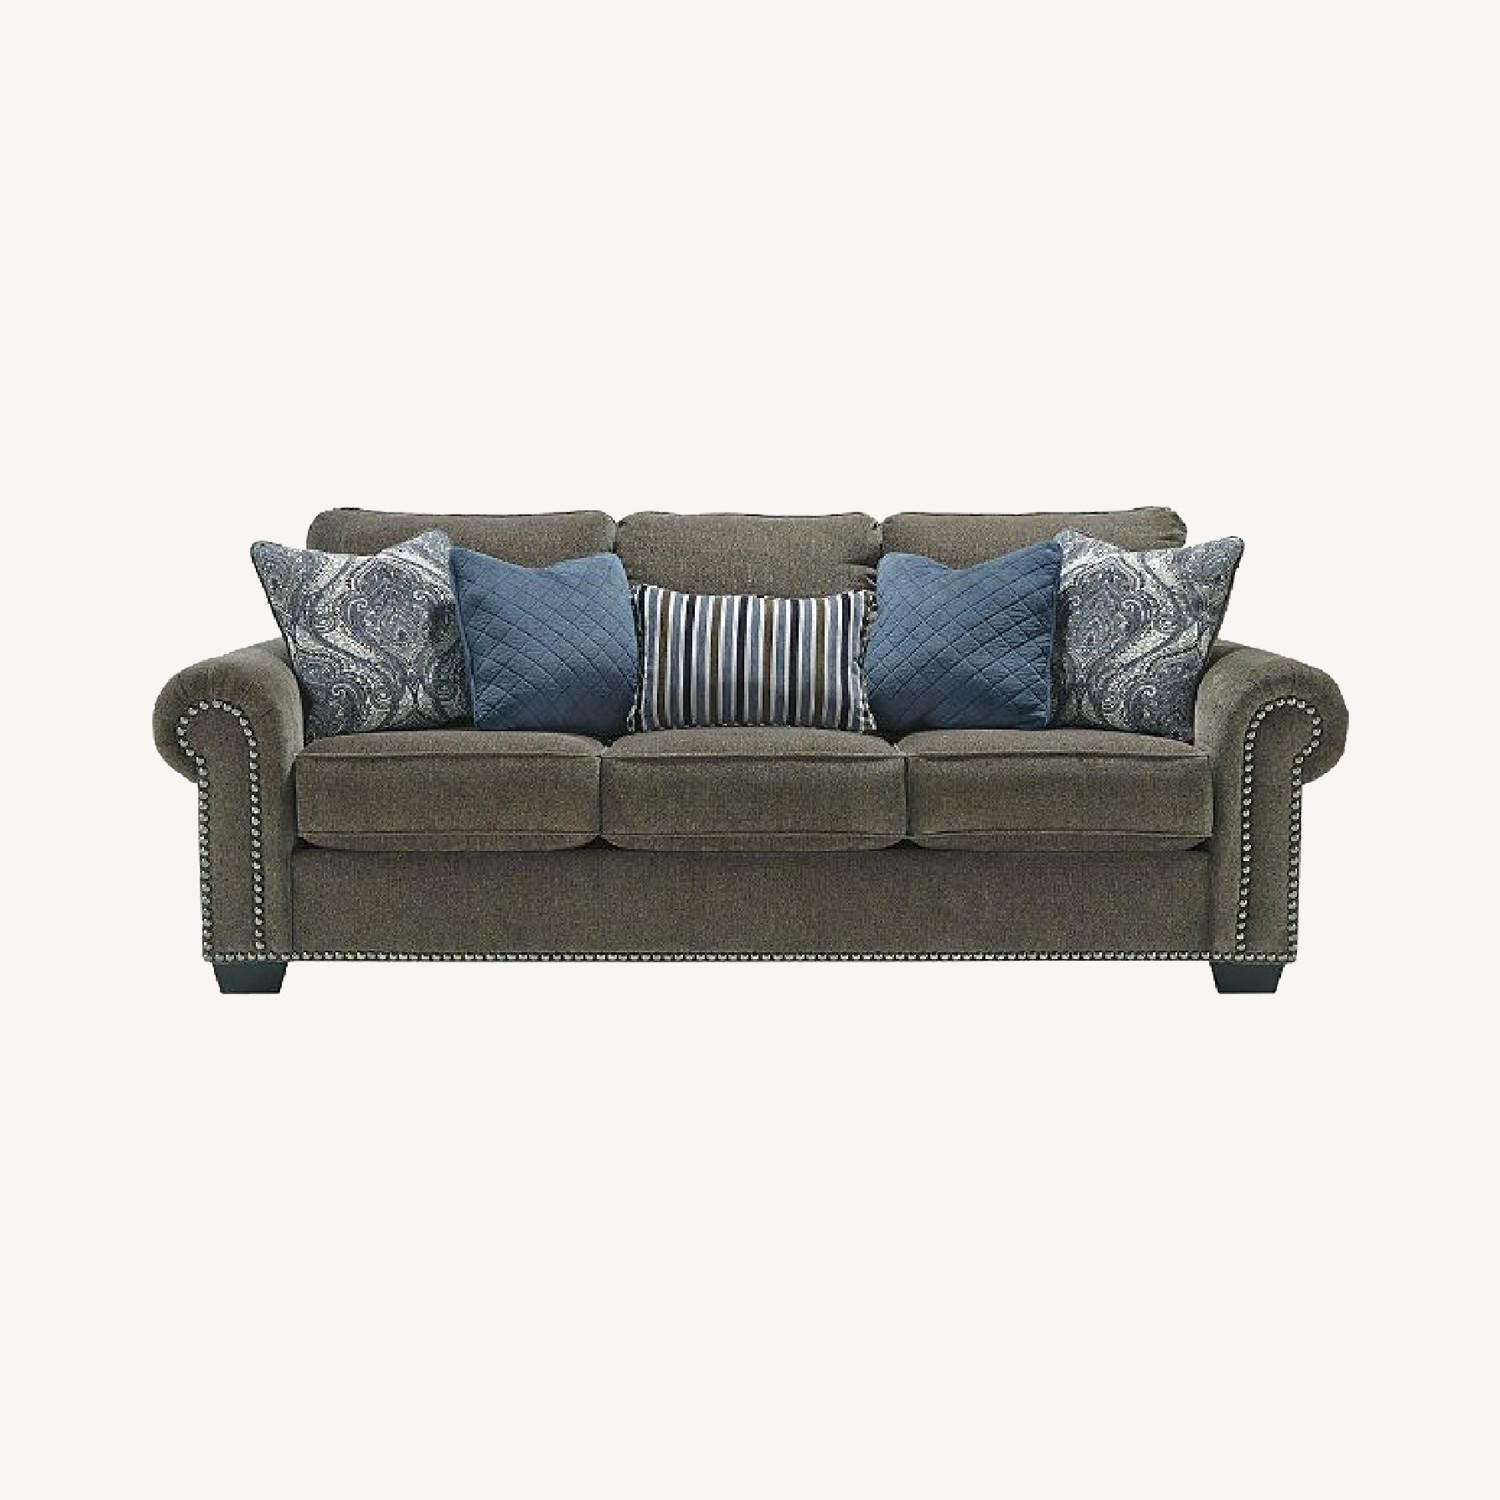 Ashley Navasota- 3 Seater Gray Chenille Sofa - image-0